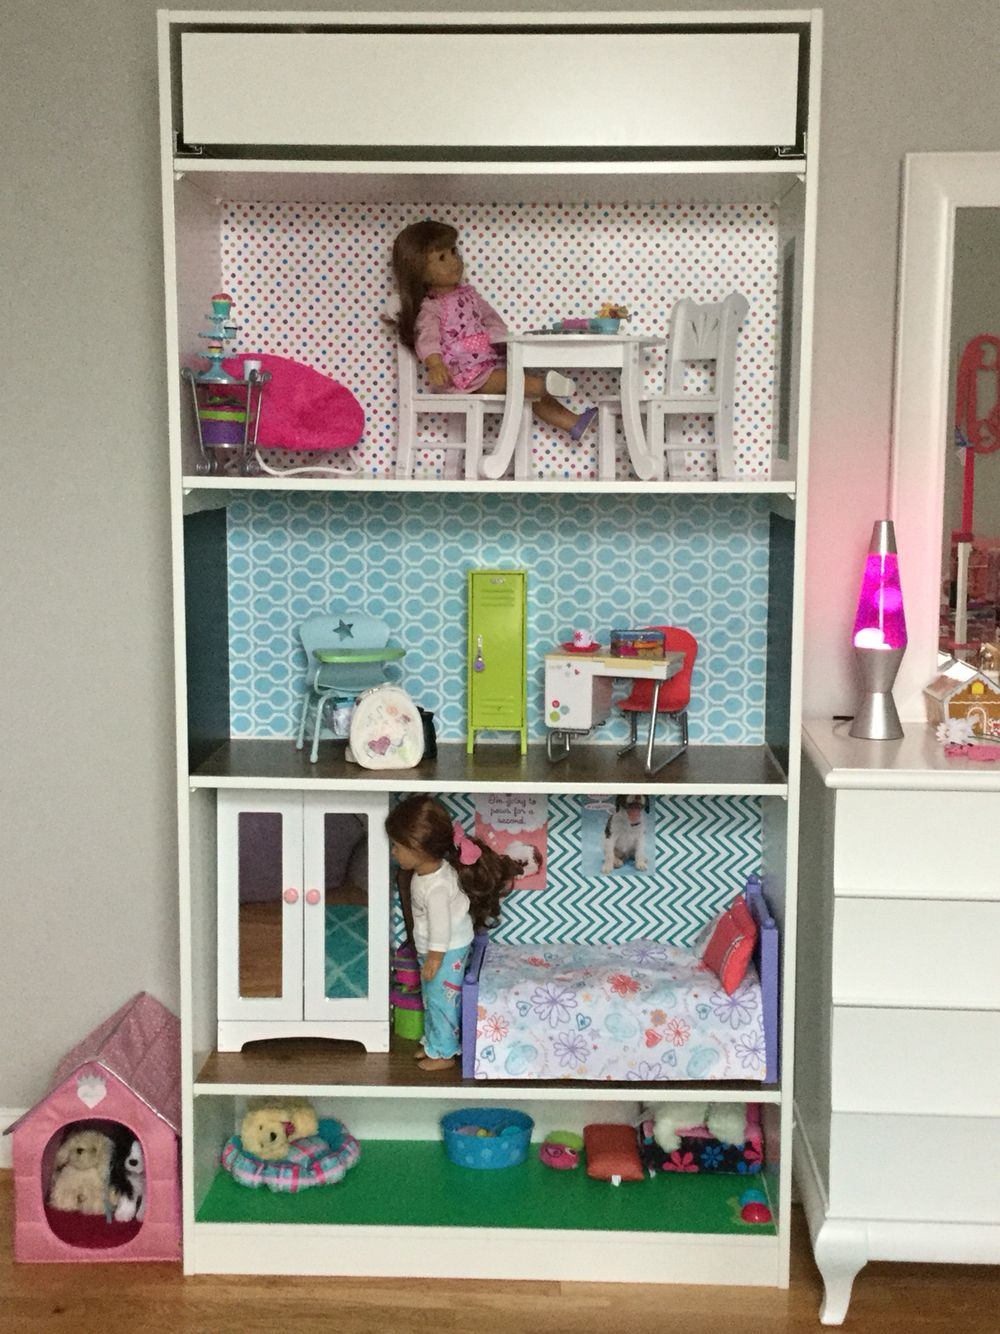 dolls house furniture ikea. American Girl Dollhouse Made From IKEA Pax Closet System And Contact Paper Dolls House Furniture Ikea